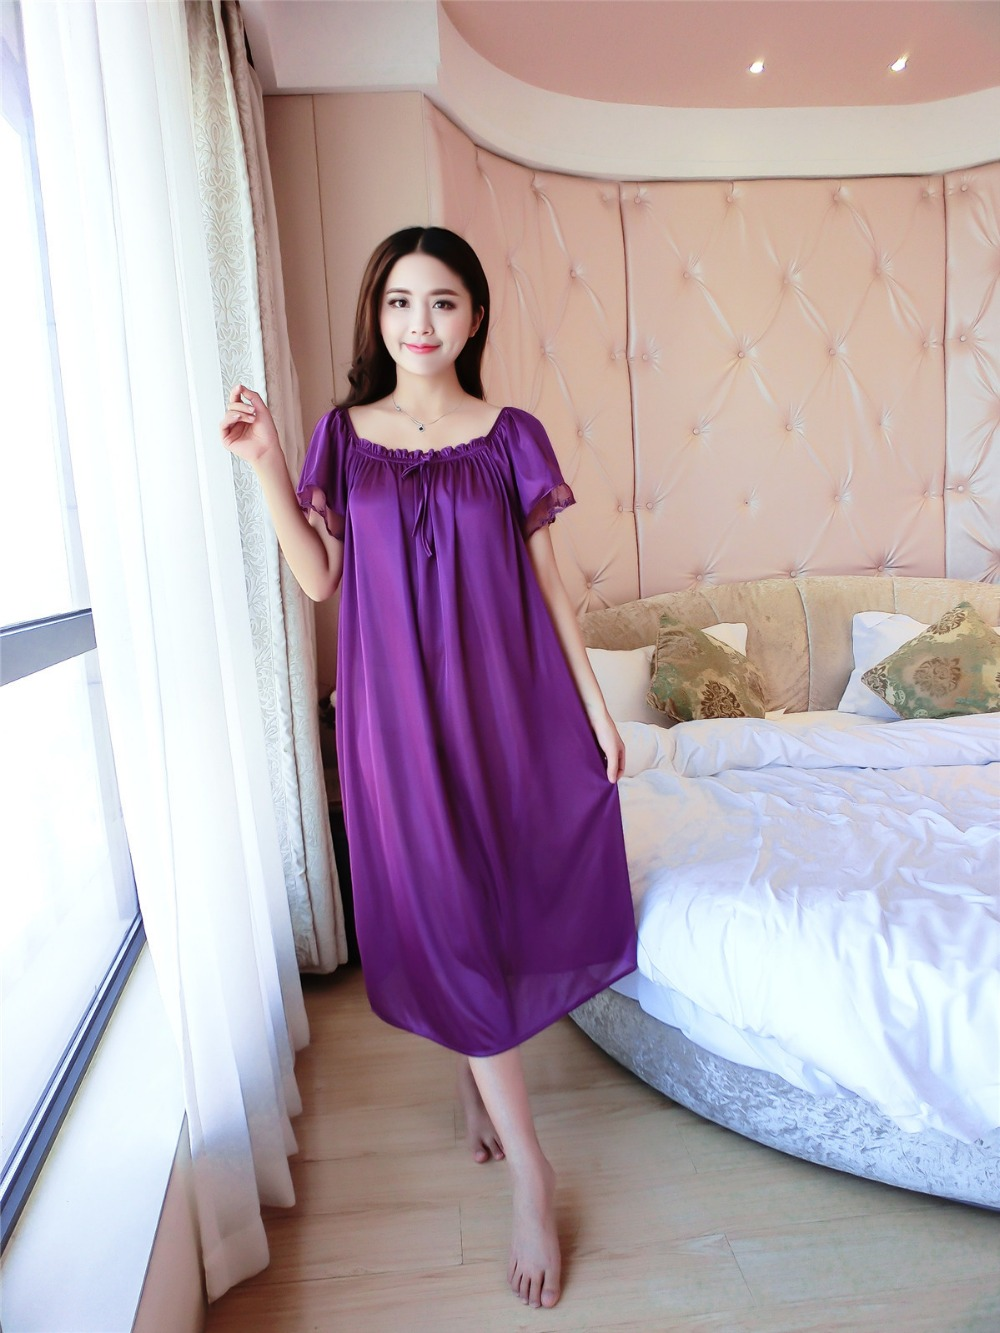 Plus Size 4XL New Sexy Silk Nightgowns Women Casual Chemise Nightie Nightwear Lingerie Nightdress Sleepwear Dress Free Shipping